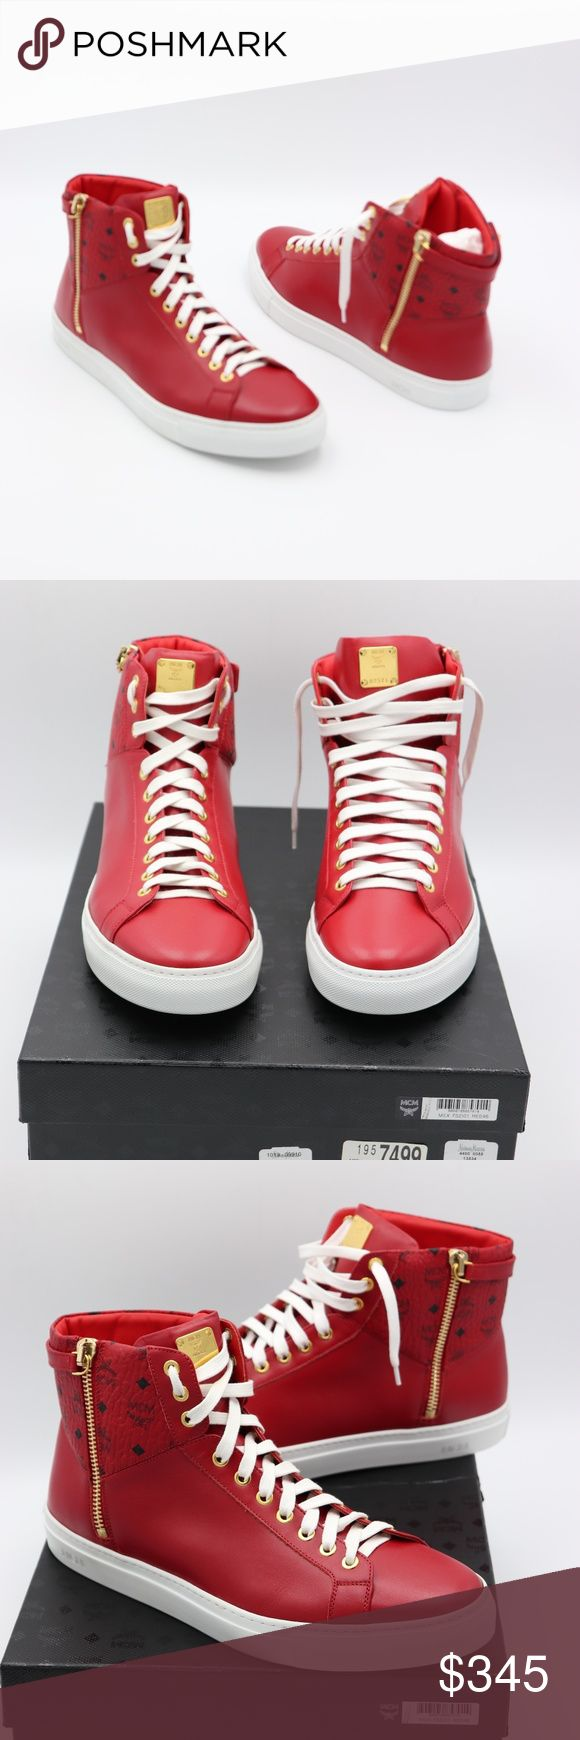 MCM Mens Red Visetos Leather Zip High-Top Sneakers NIB MCM Collection Visetos Leather Zip High Top Sneakers Brand New in original MCM box, 100% Guaranteed Authentic!! MFSRP: $495.00 +tax Size: 13 US / 46 EUR Expertly crafted in smooth red leather, the design offers superior flexibility and hardwearing construction as well as signature touches throughout. In the mix: Iconic Visetos print at the collar, an MCM plate on the tongue and a side zipper reinforced with a turnlock-fastening strap…